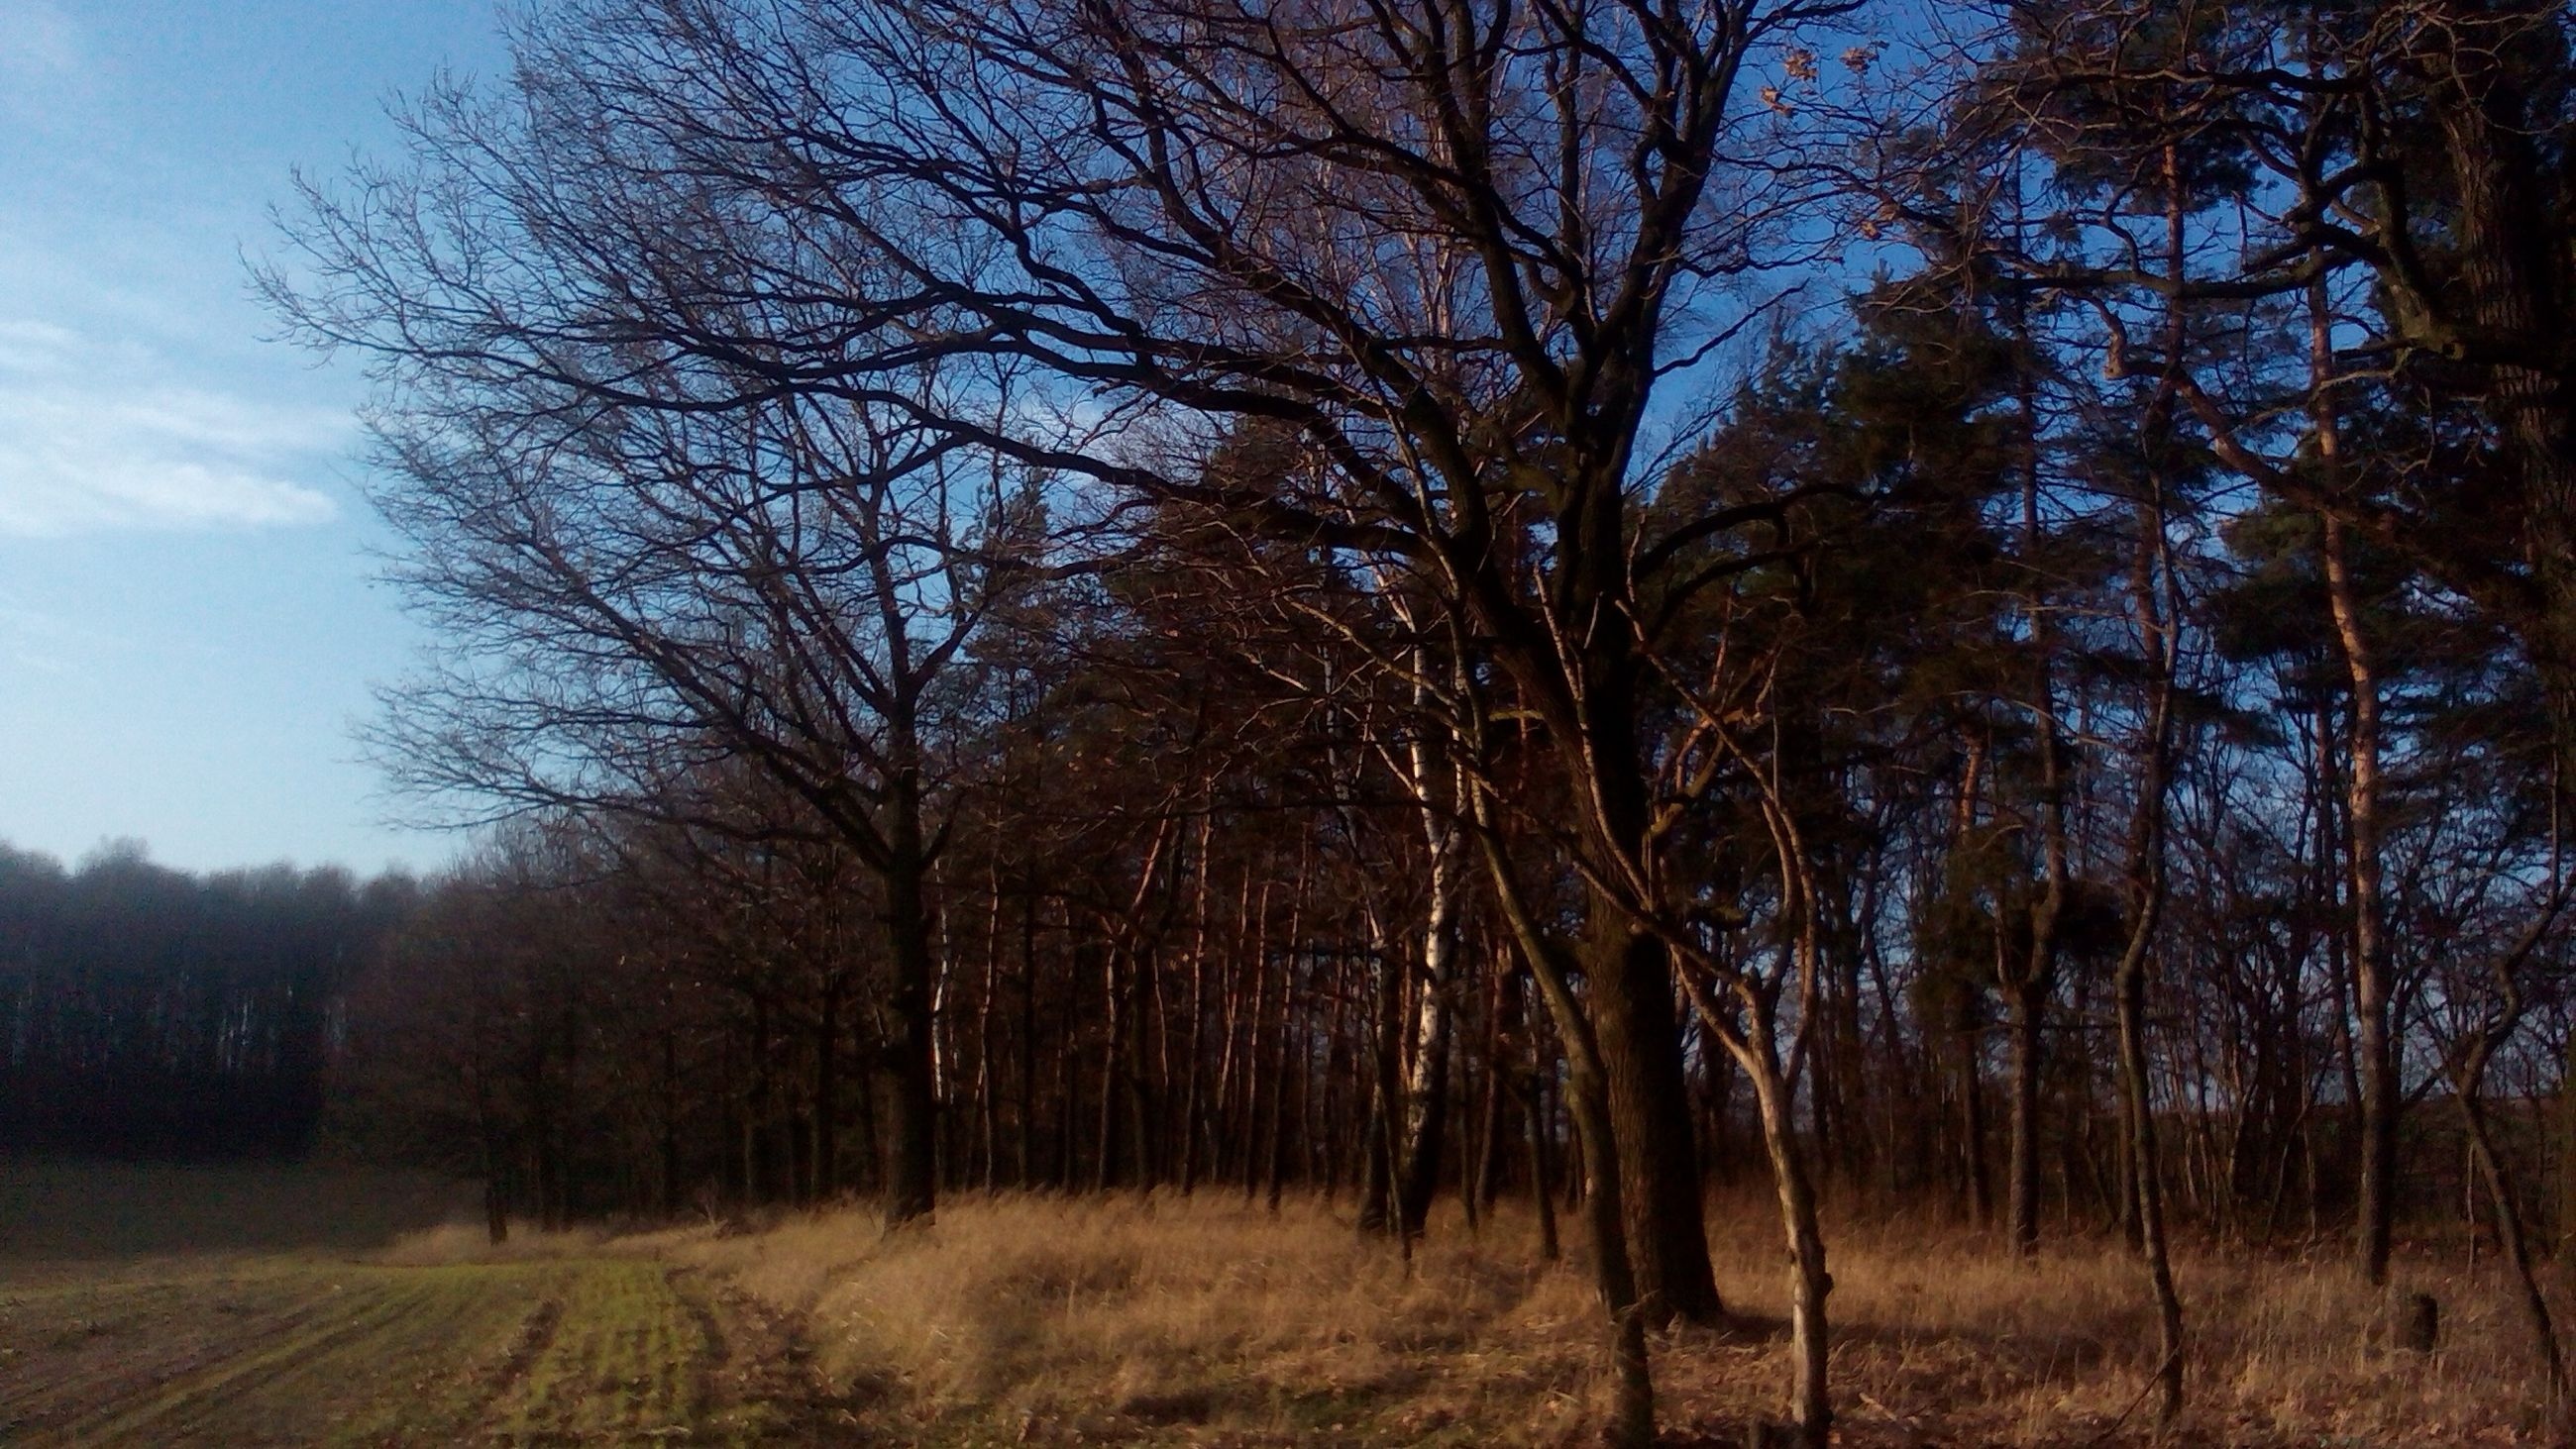 tree, bare tree, tranquility, tranquil scene, tree trunk, nature, landscape, branch, growth, beauty in nature, scenics, sky, field, forest, non-urban scene, woodland, grass, outdoors, no people, day